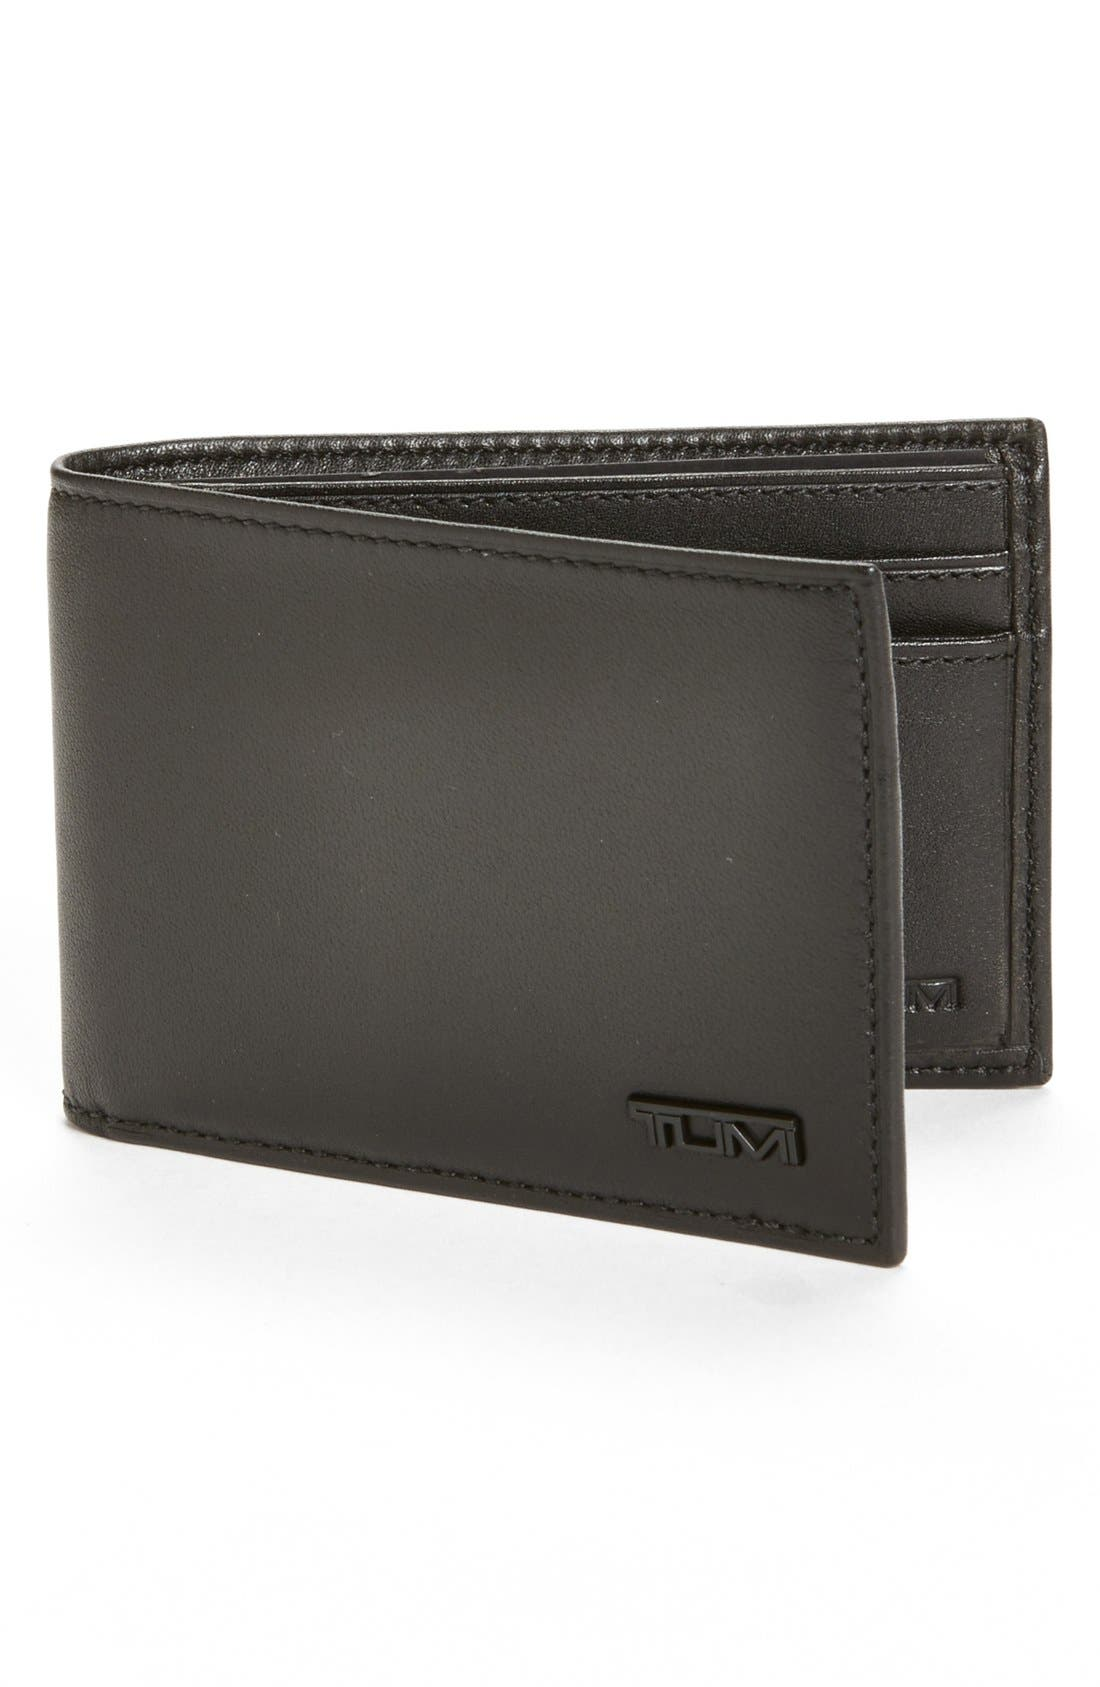 Alternate Image 1 Selected - Tumi 'Delta' Slim Single Billfold